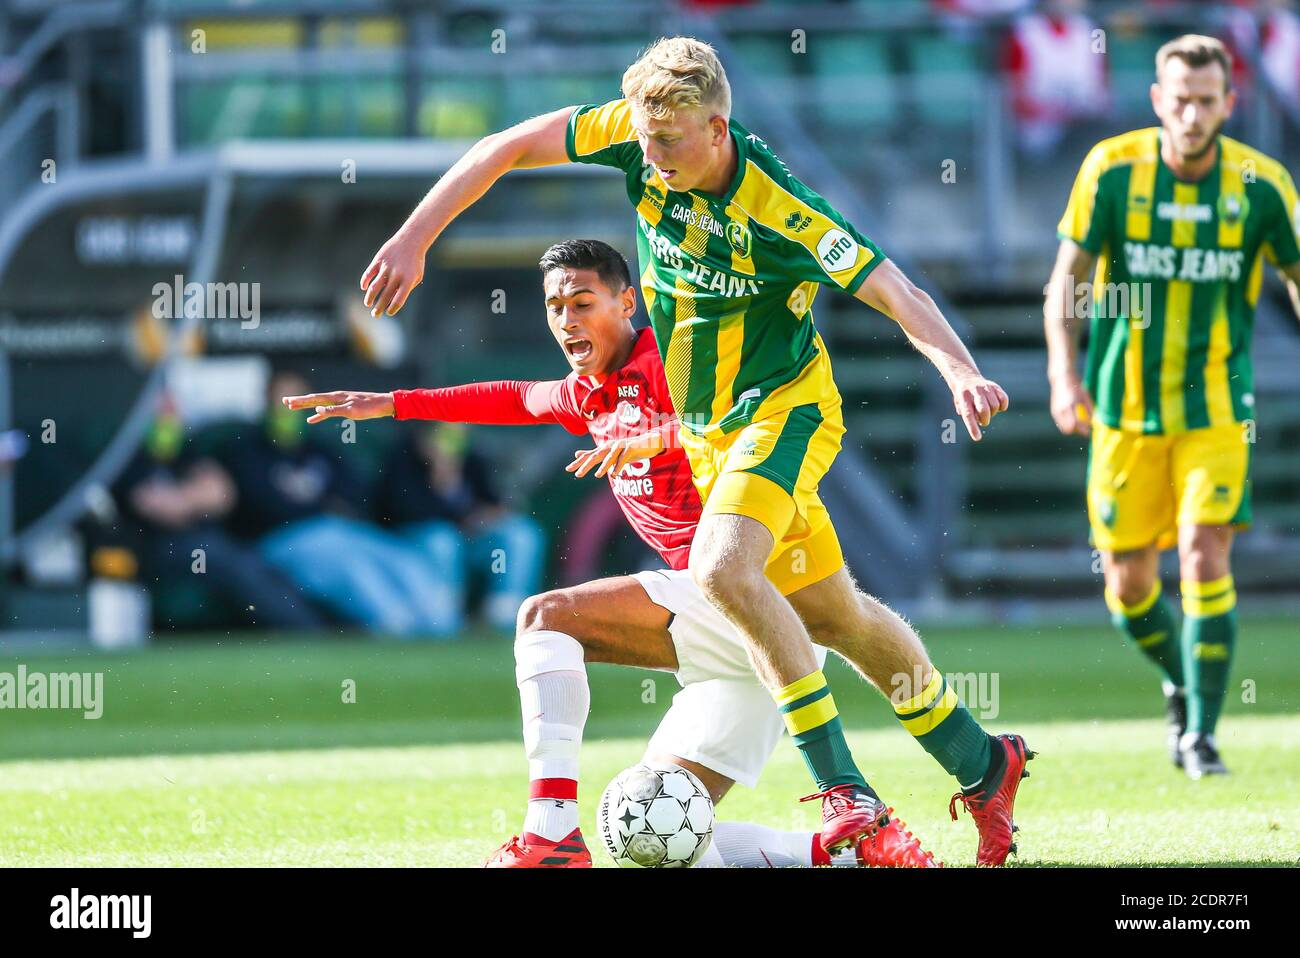 Rotterdam 29 8 20 Cars Jeans Stadion Pre Season 20 21 Ado Den Haag Az Az Player Tijjani Reijnders Ado Player Kees De Boer Credit Pro Shots Alamy Live News Stock Photo Alamy